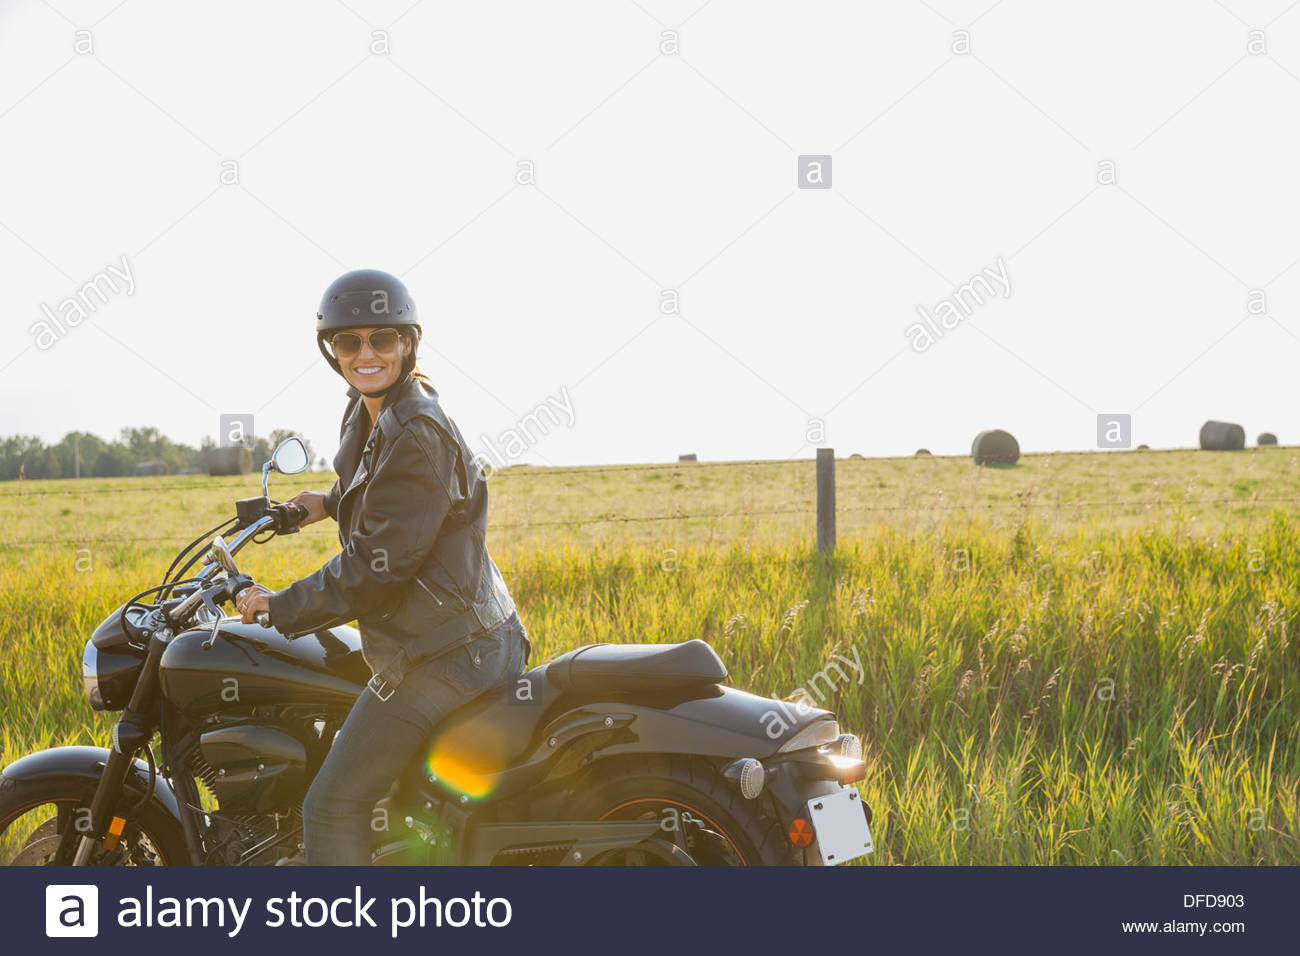 Portrait of female biker sitting on motorcycle - Stock Image